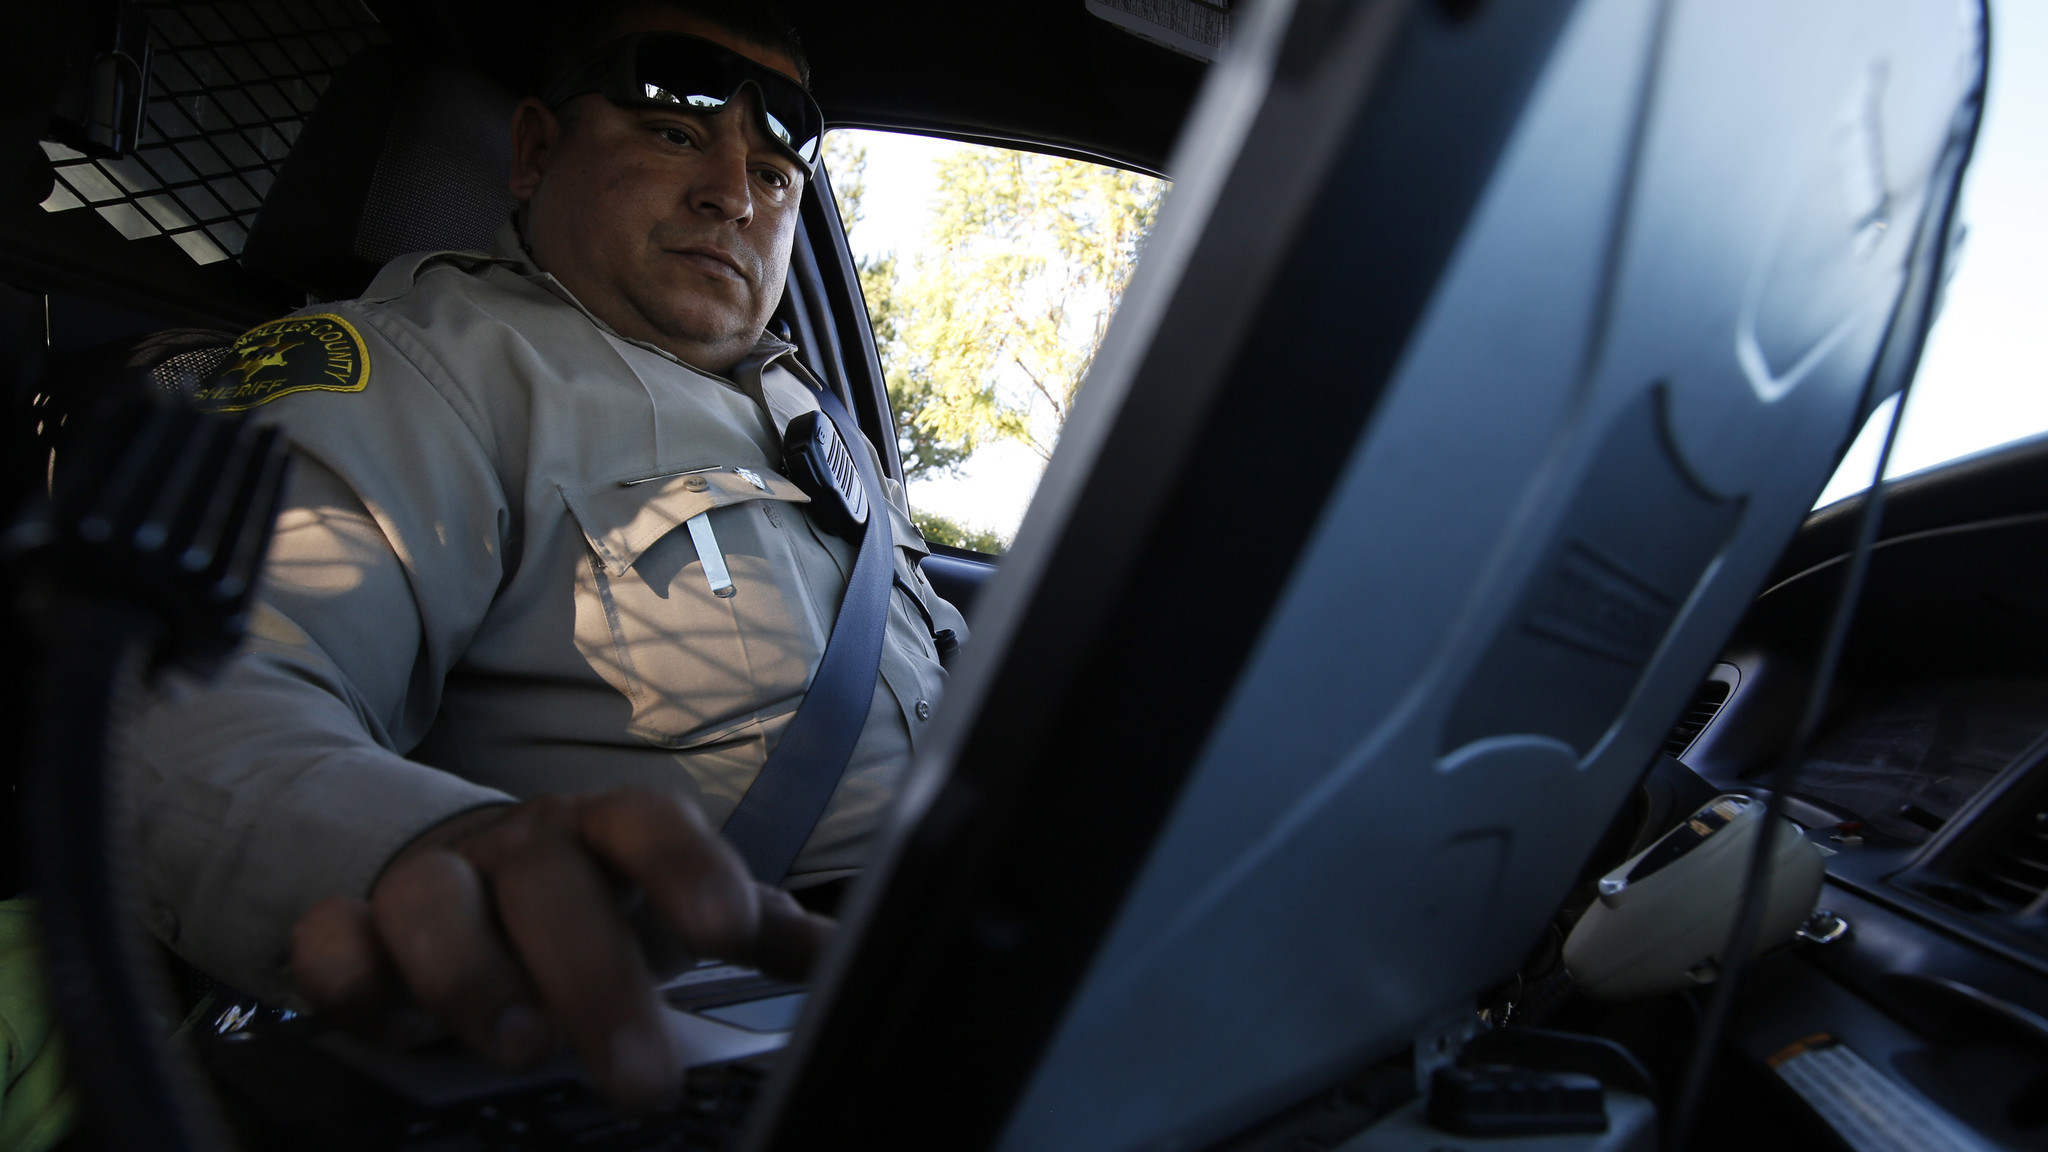 California Front Seat Law >> L.A. County Sheriff's Dept. restricts deputies' use of in-car devices - LA Times